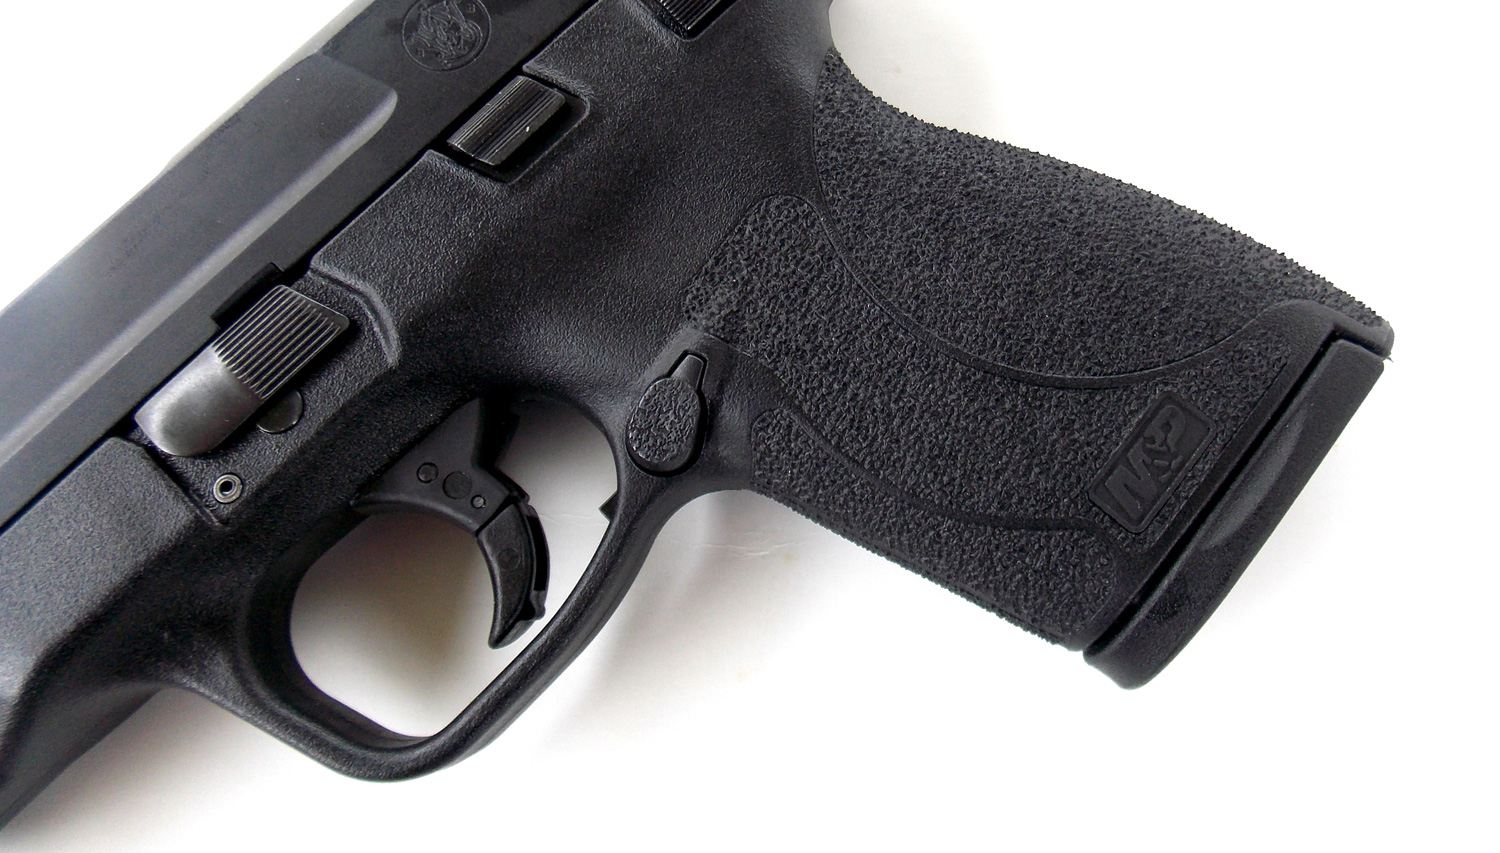 Grip abrasion on the Smith and Wesson M&P .45 Shield